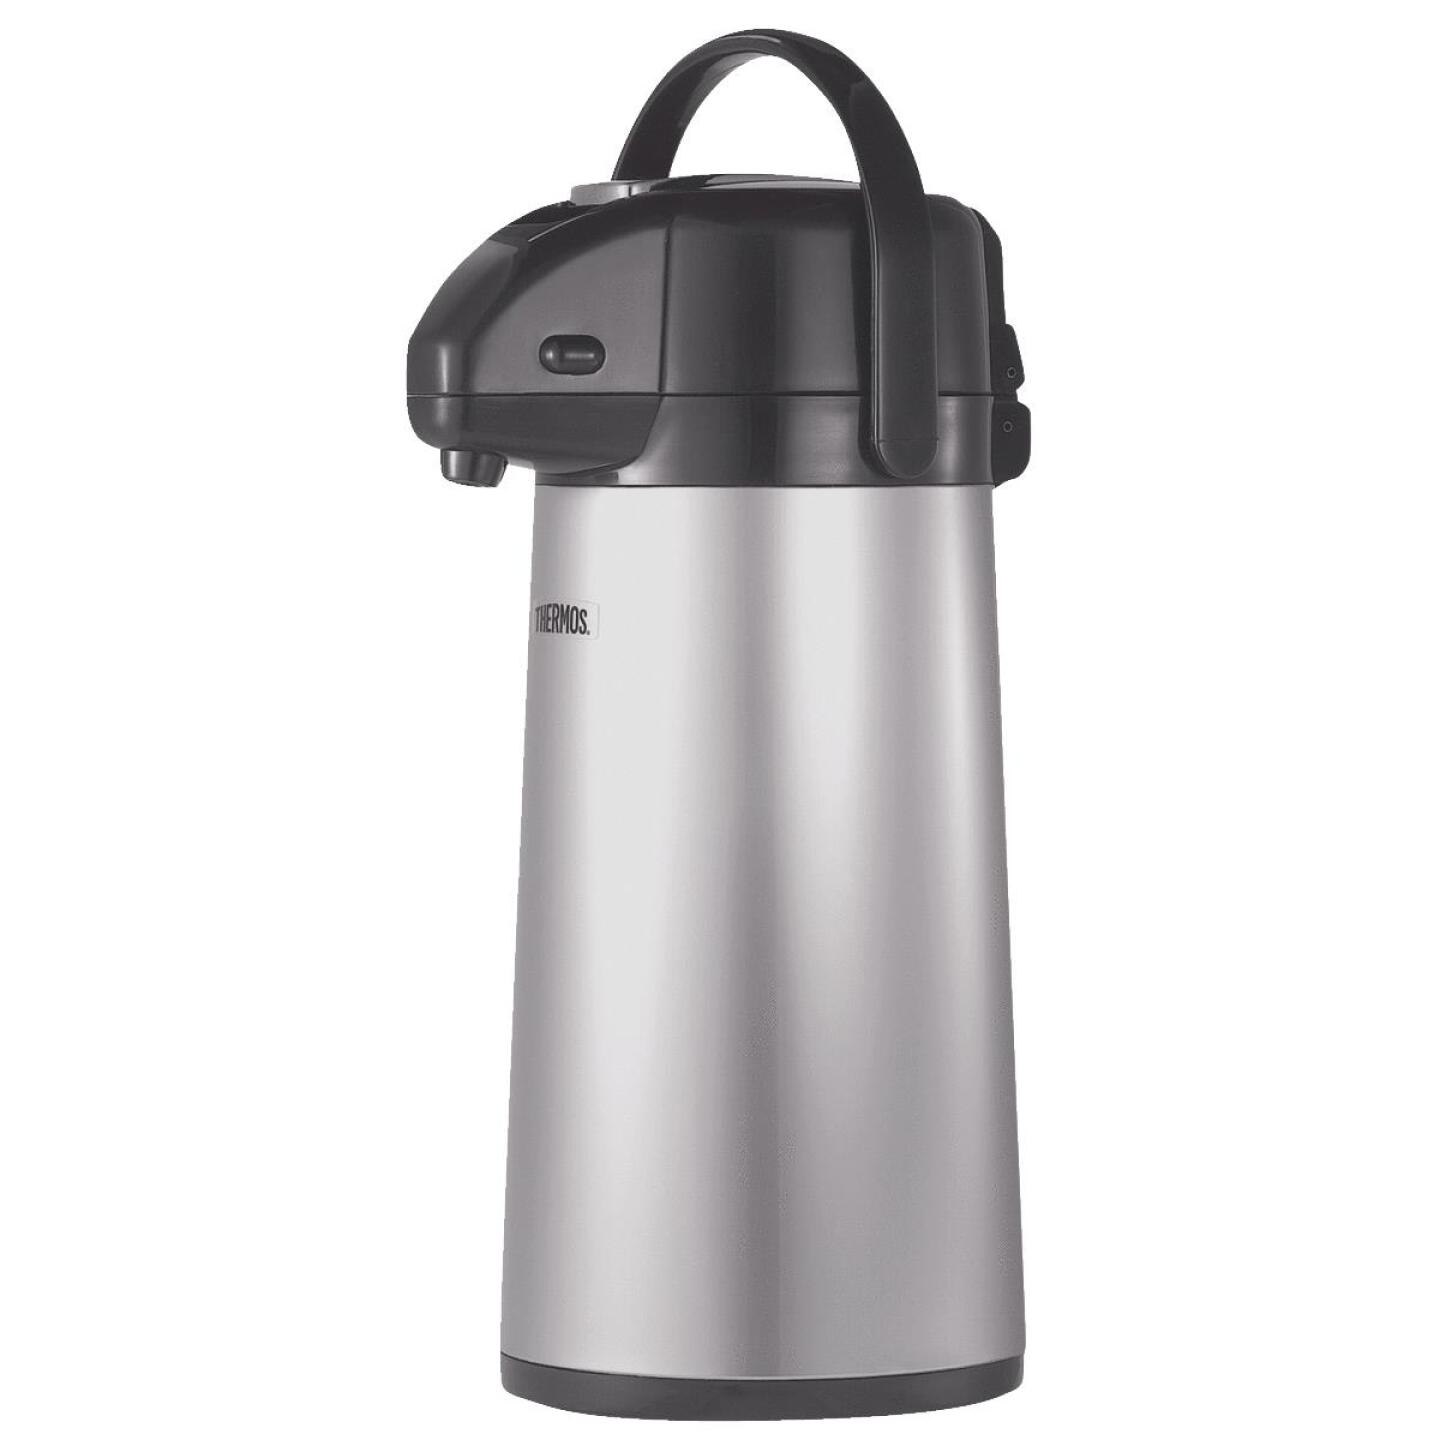 Thermos Thermal Beverage Dispenser, 2 Qt. Image 1